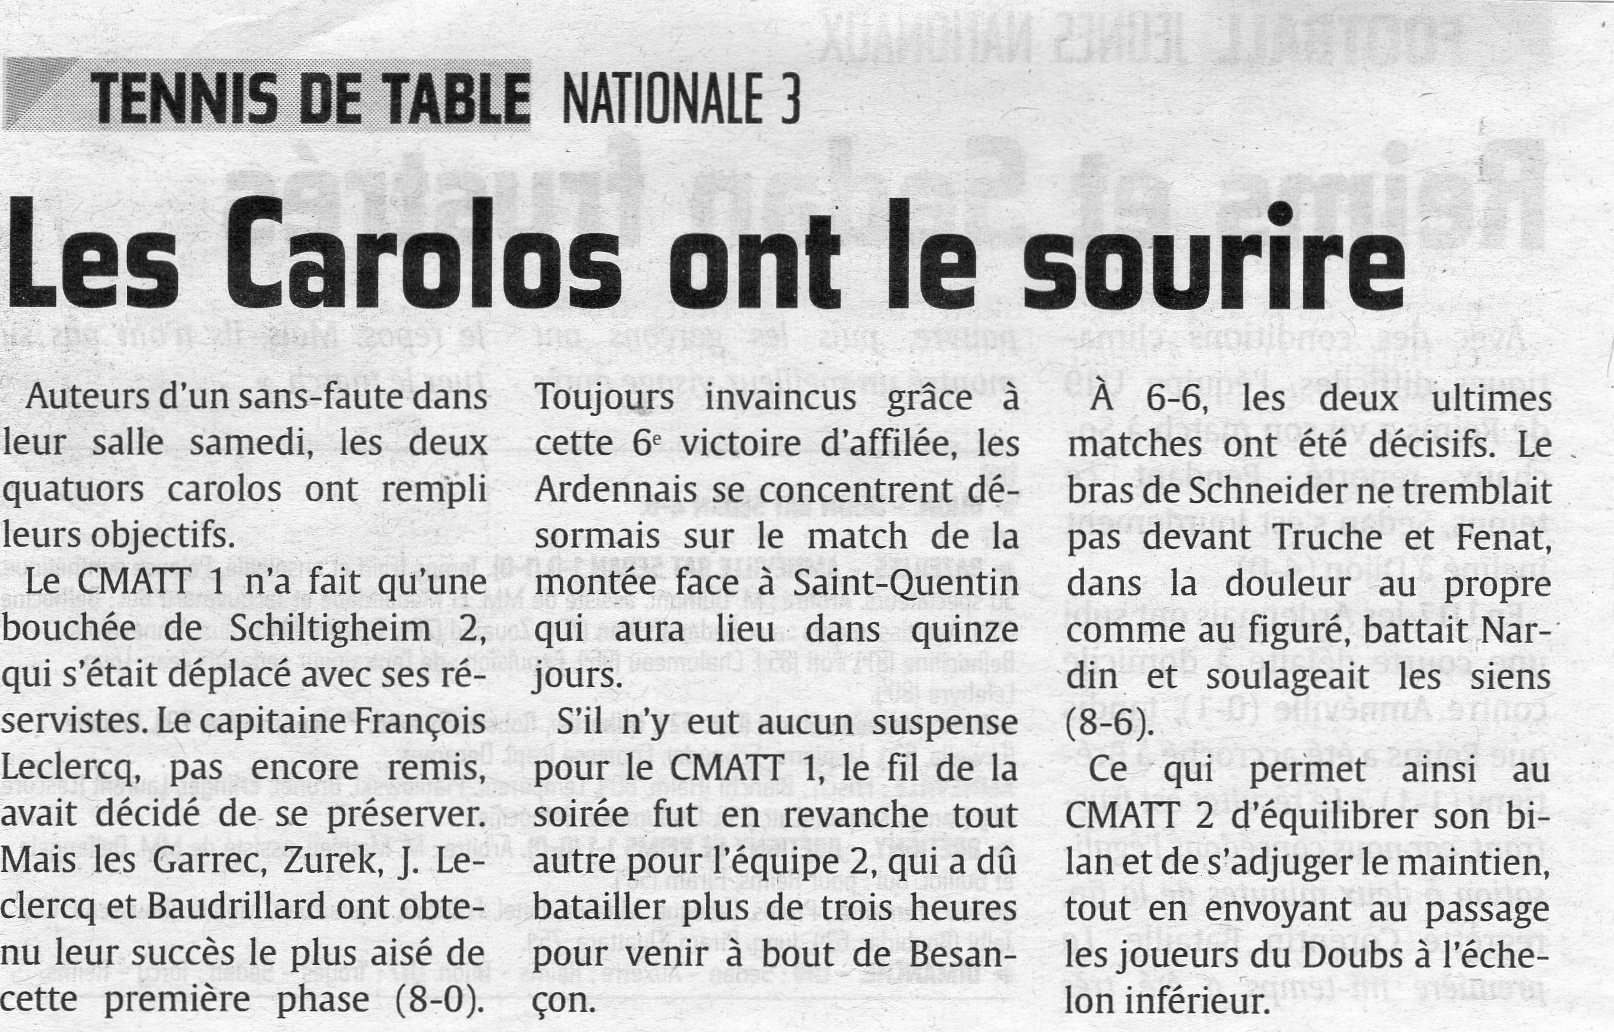 data/2013/multimedia/presse/12/Nationale 3 - Les carolos ont le sourire.jpg